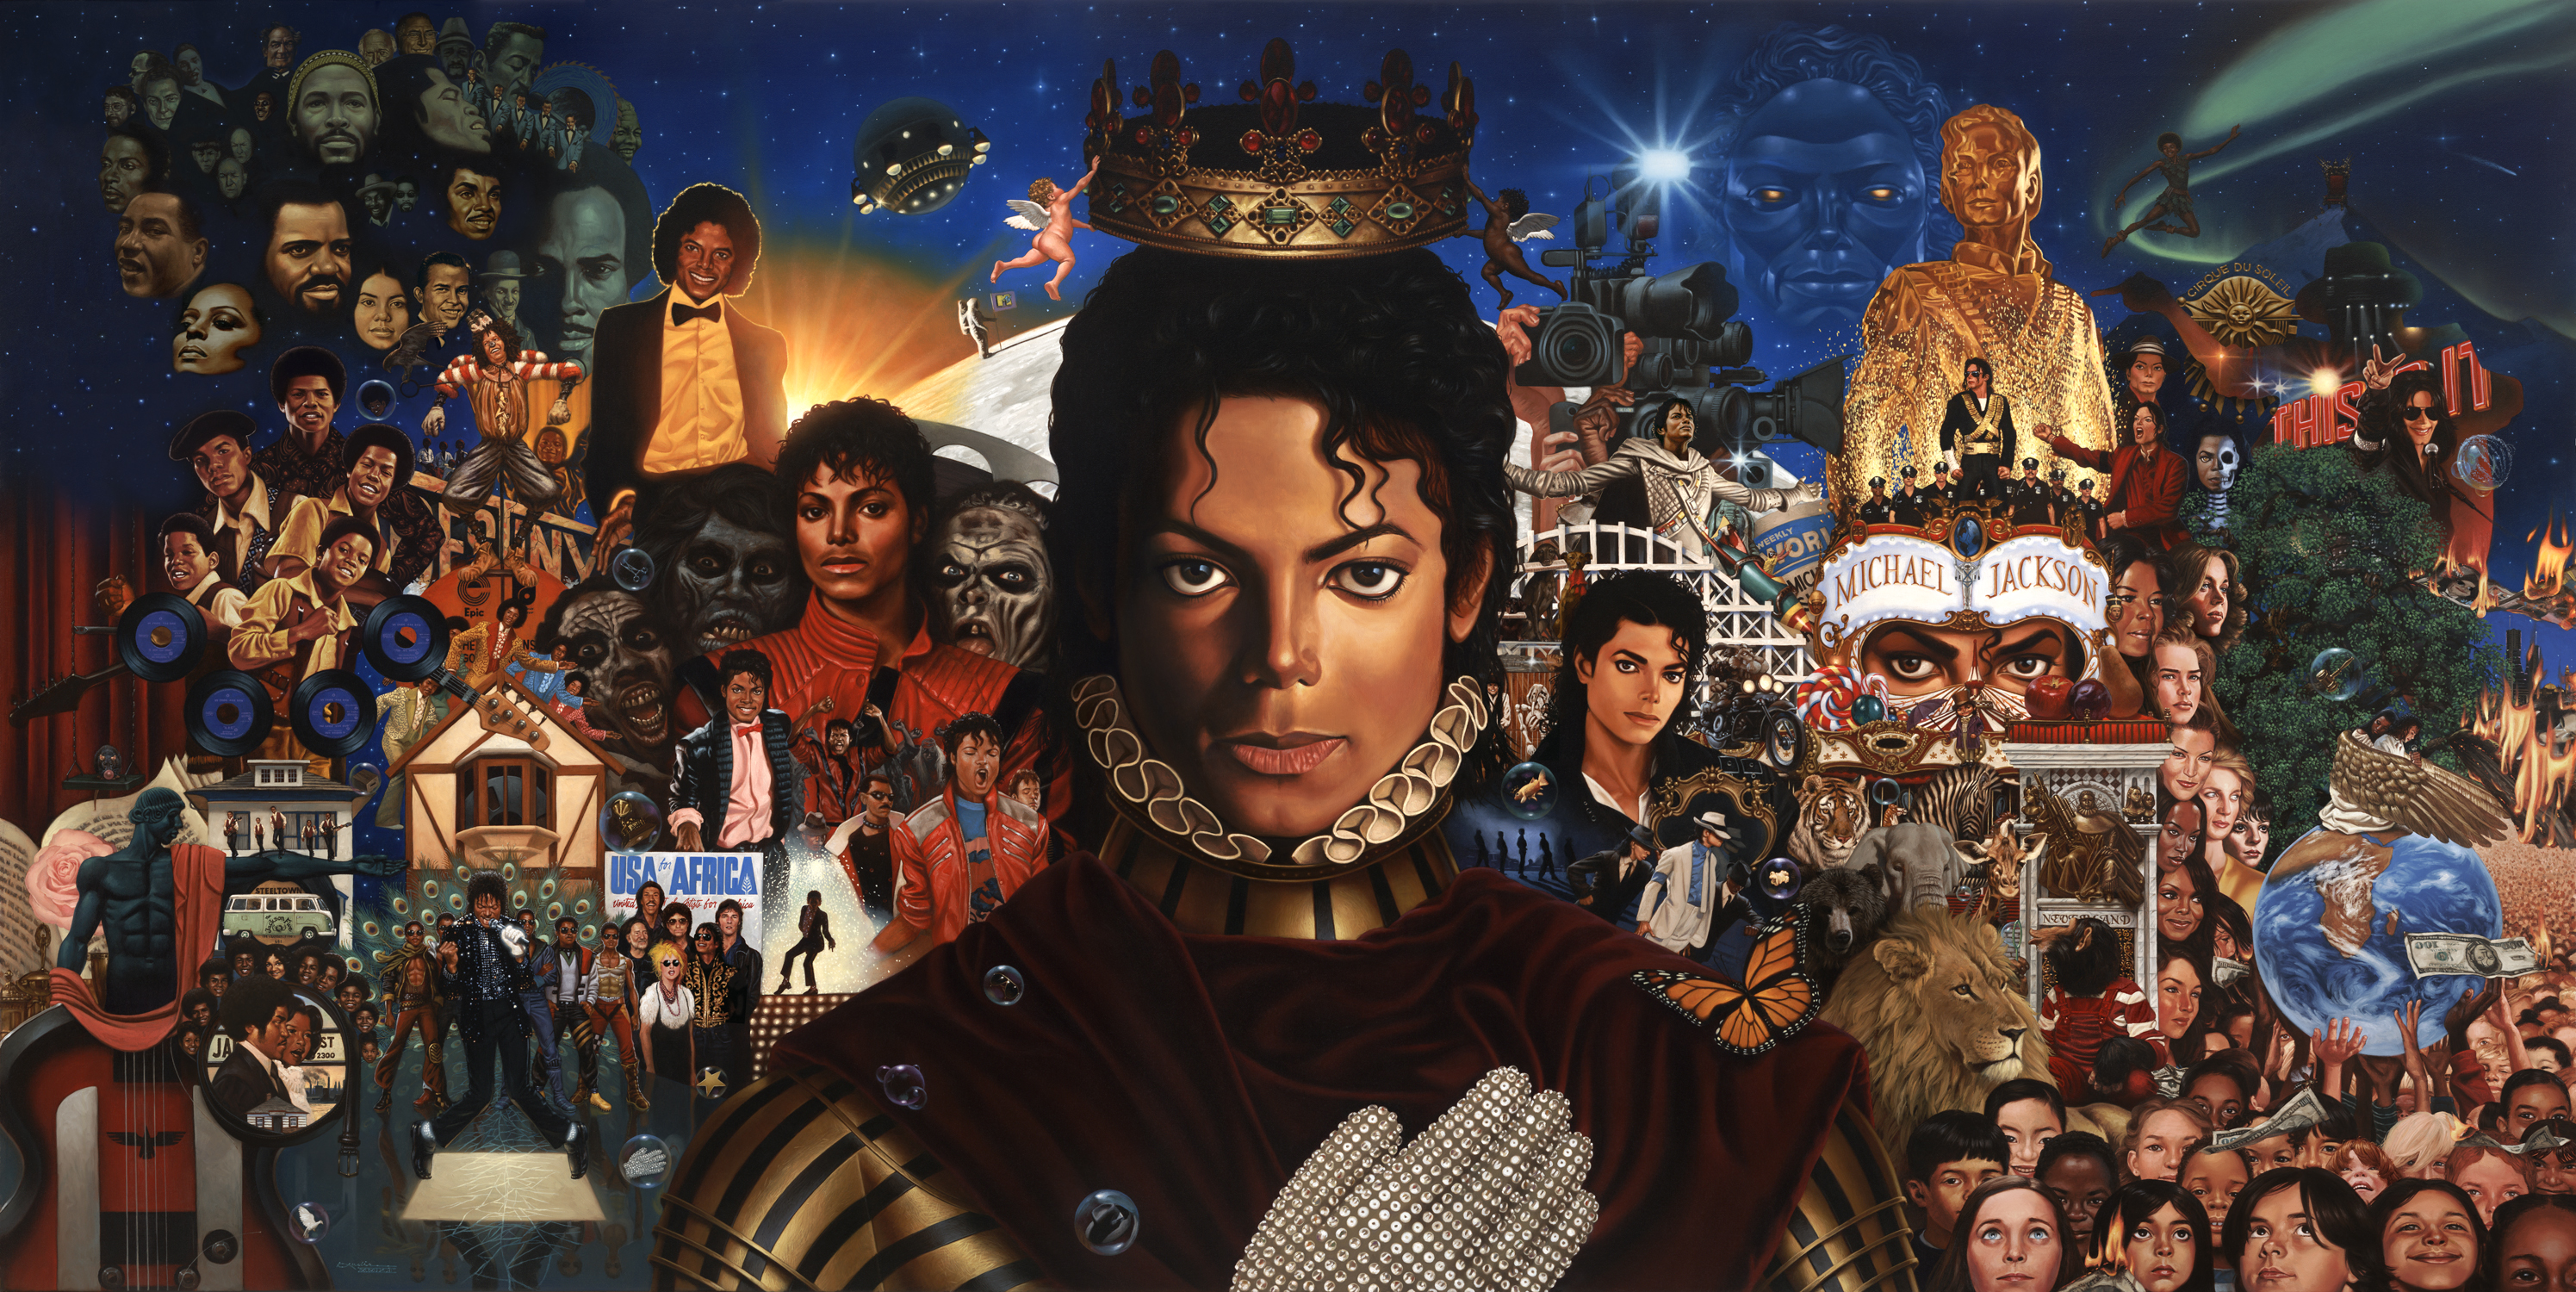 King-Of-Pop-Mural-Full-Kadir-Nelson.jpg